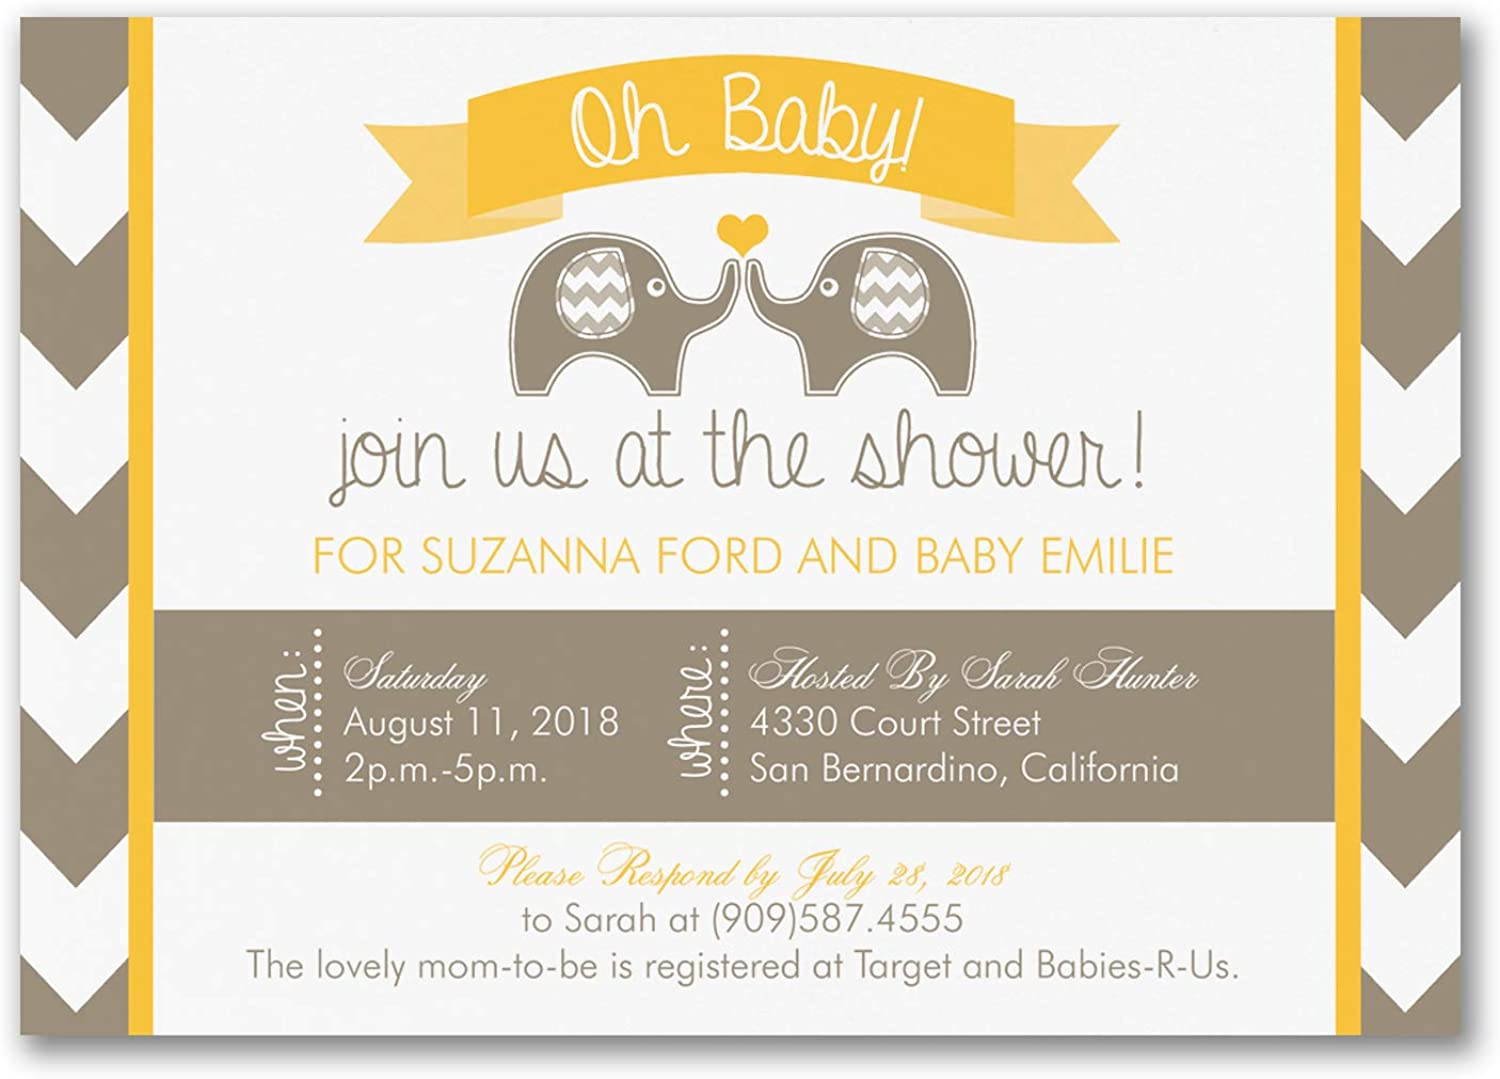 650pk Oh Baby - Baby Shower Invitation-Shop All Baby